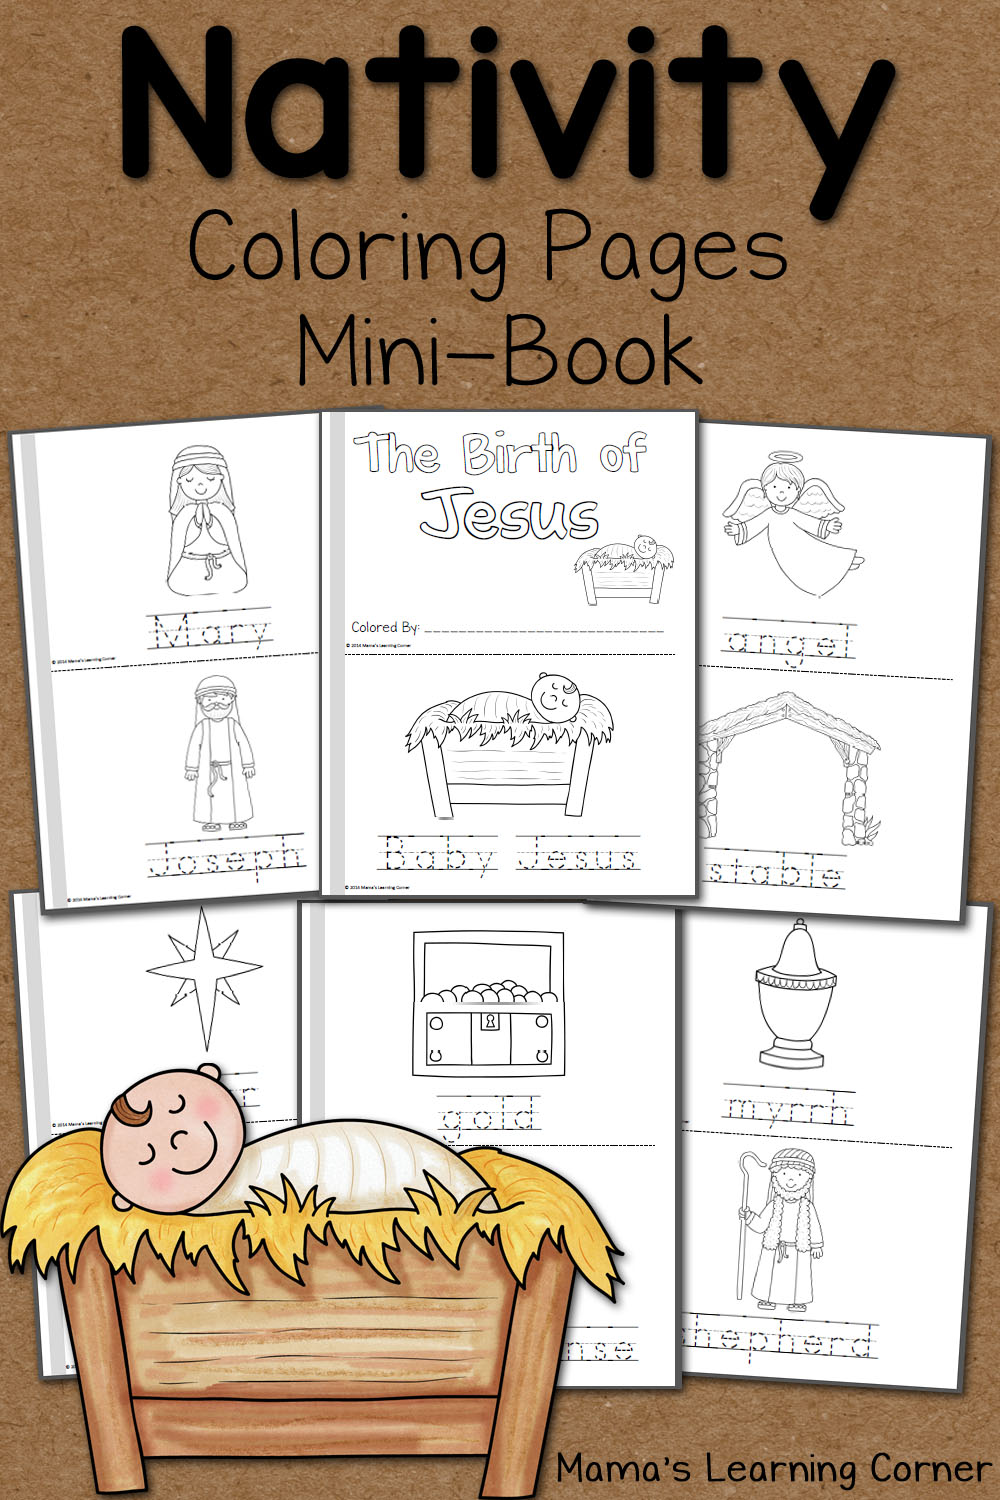 Nativity Coloring Pages - Mamas Learning Corner